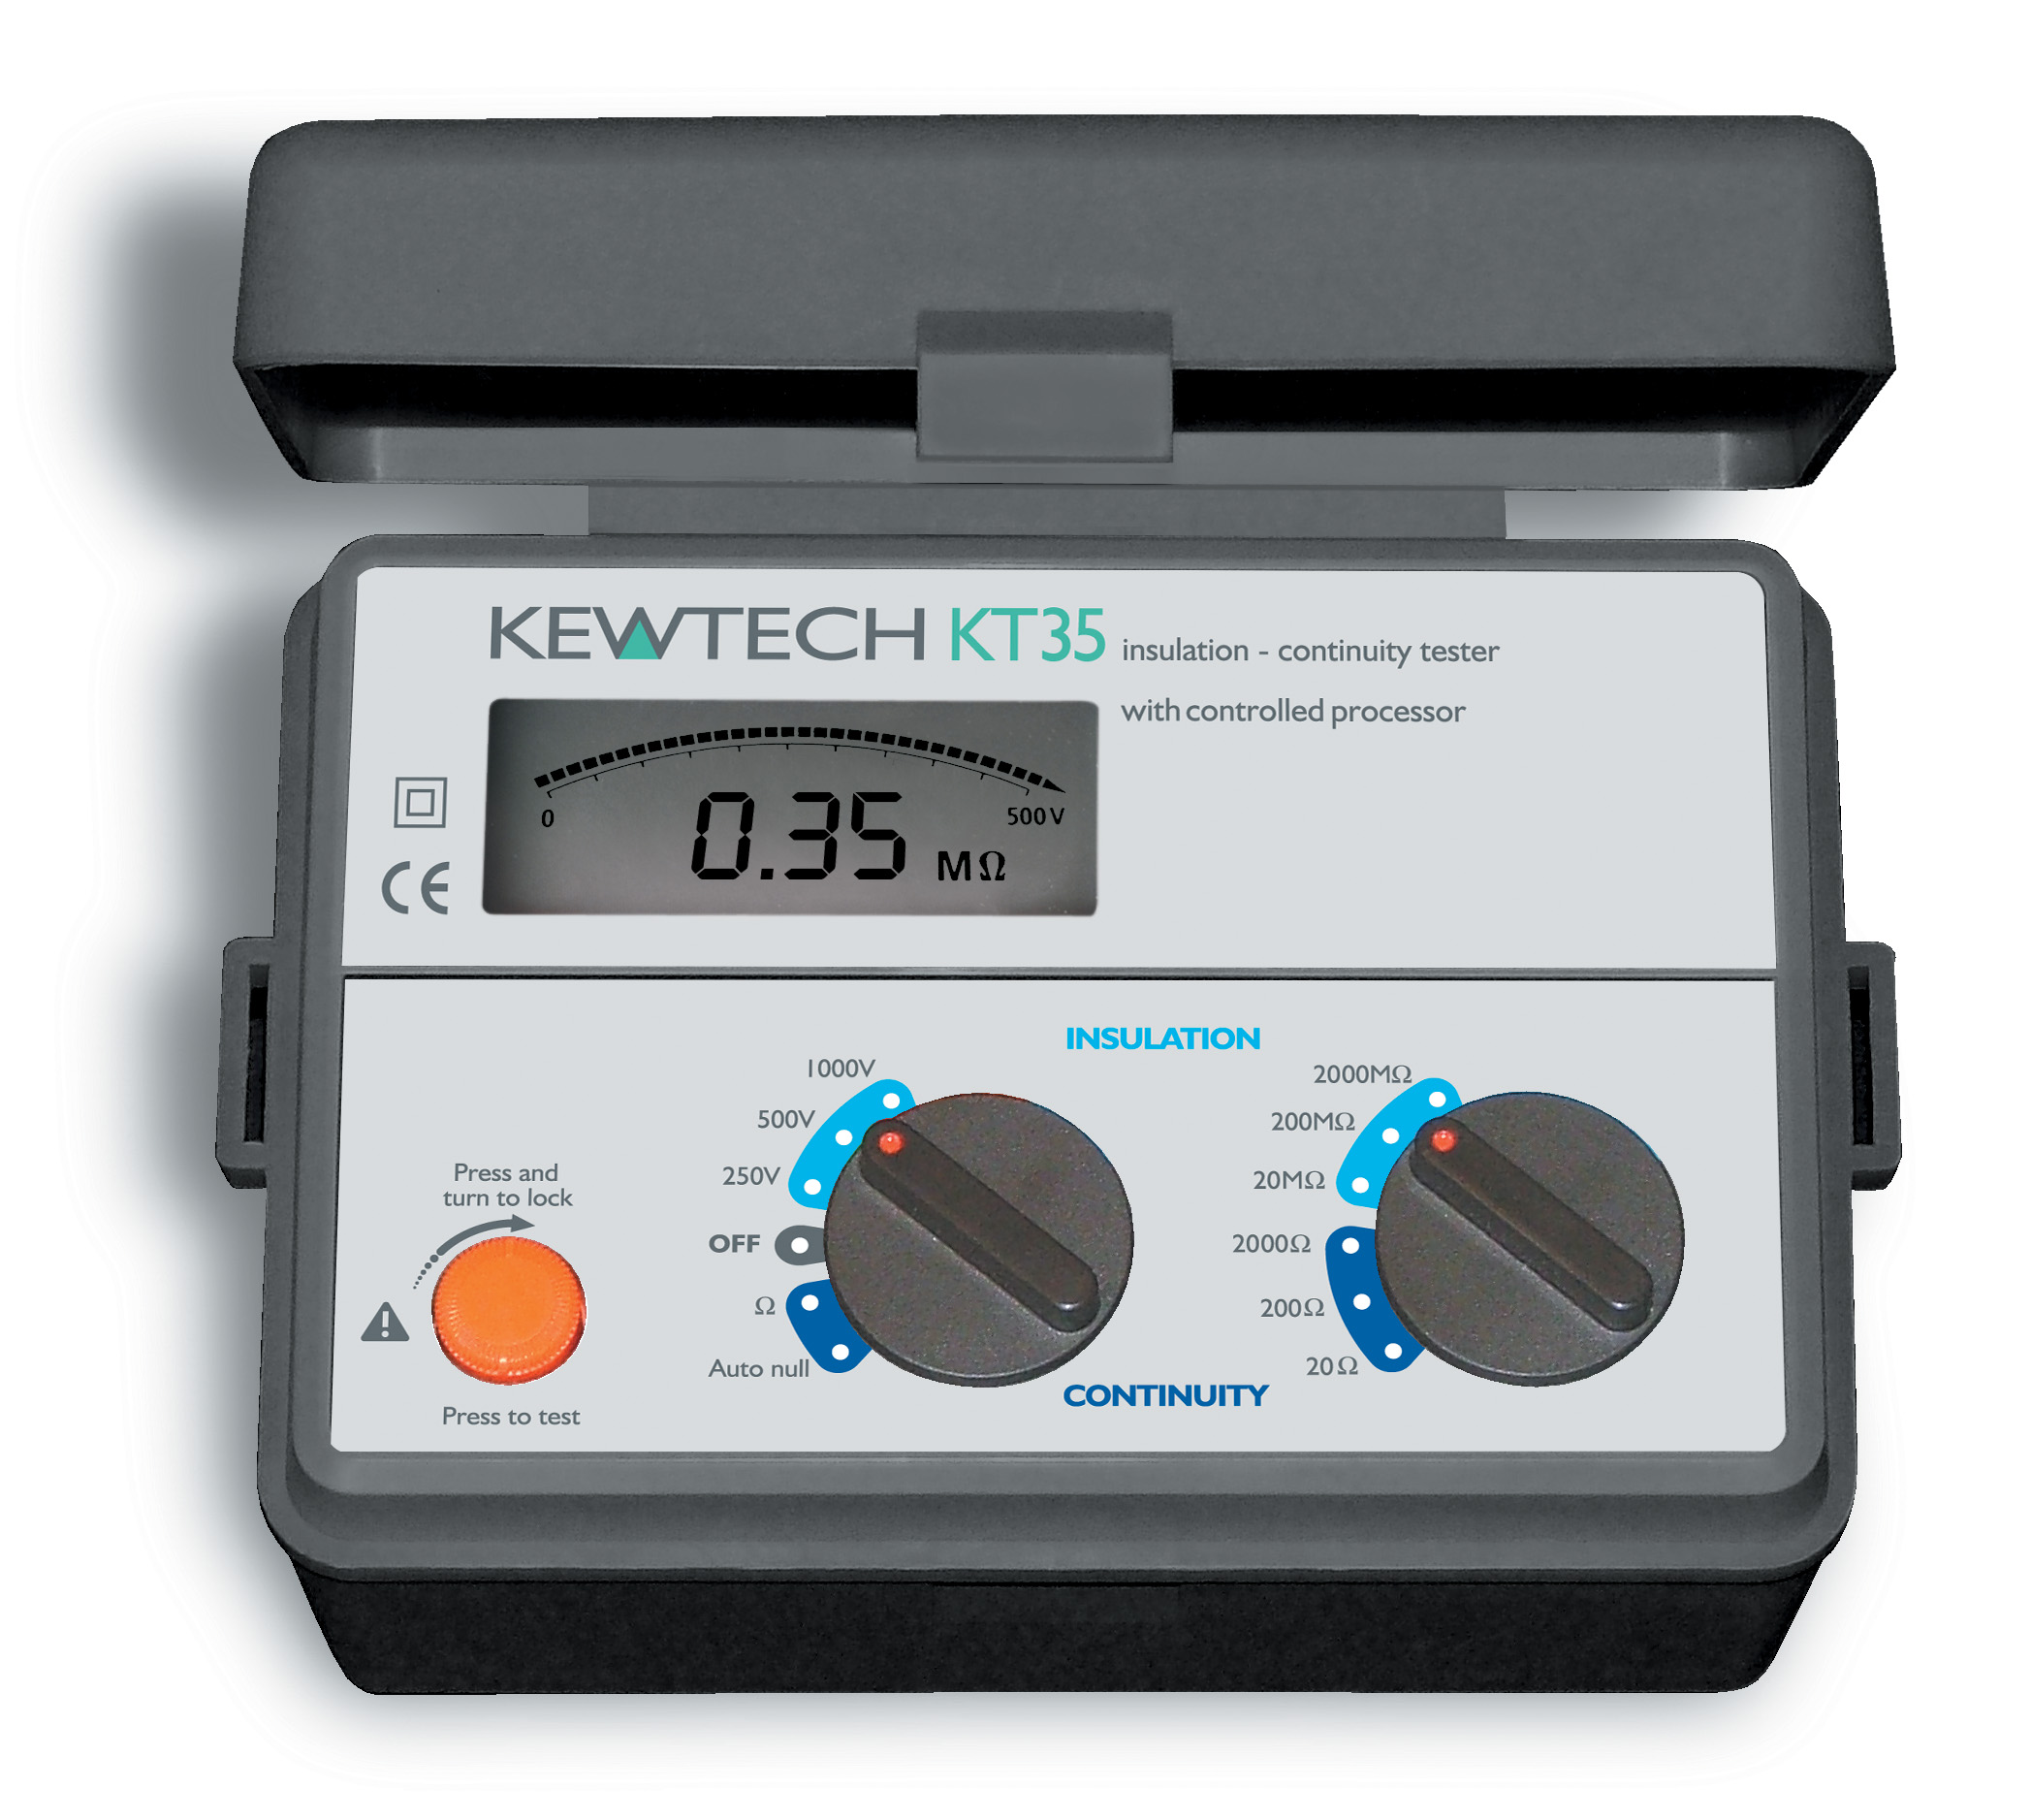 KT35 Digital Insulation/Continuity tester